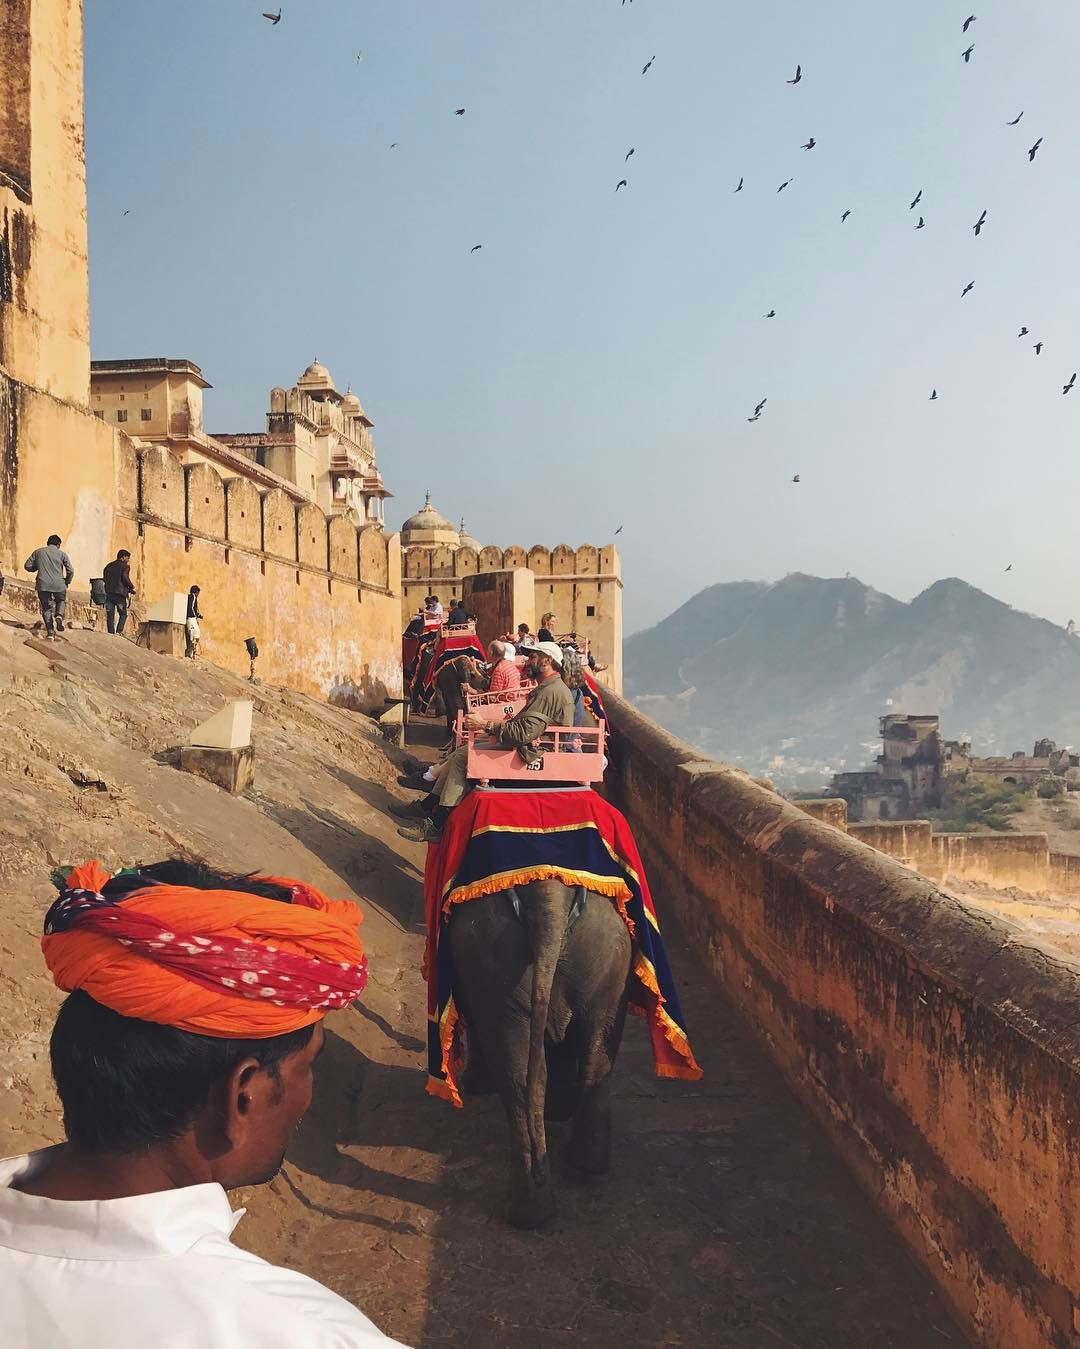 Path up to Amer Fort, Jaipur, India. instagram.com/marissapicc